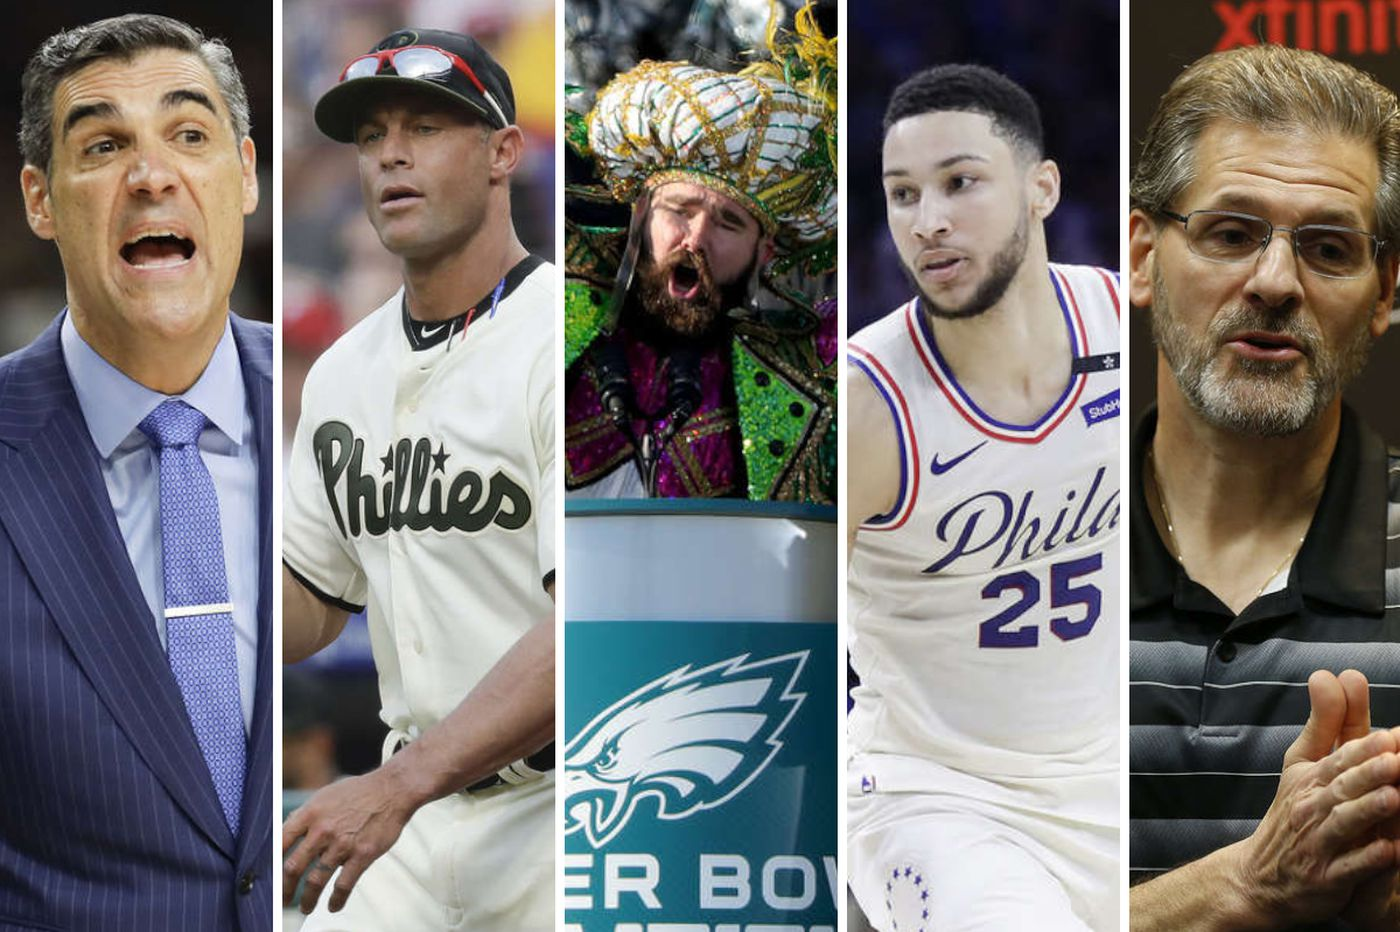 Bryan Colangelo isn't the only Philly sports figure with a hidden Twitter history (wink, wink) | Mike Sielski